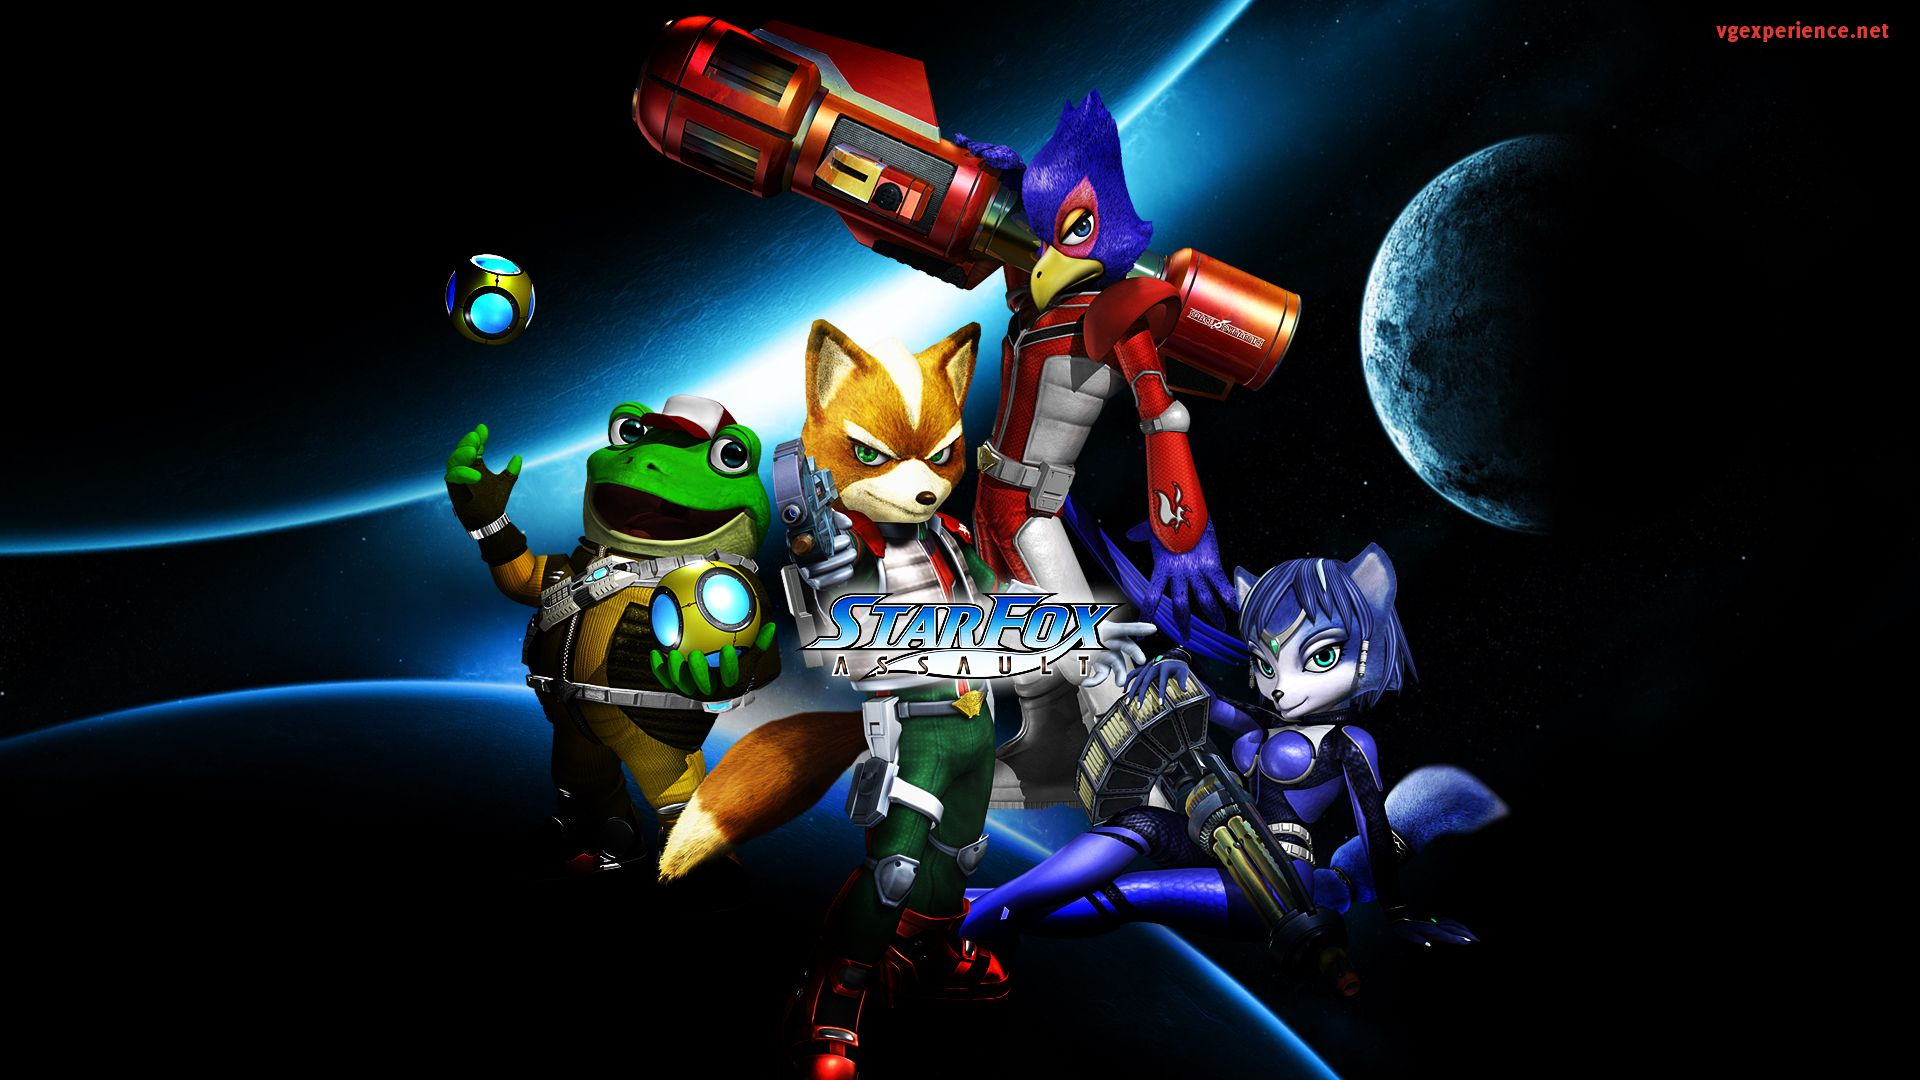 Star Fox Wallpapers Top Free Star Fox Backgrounds Wallpaperaccess